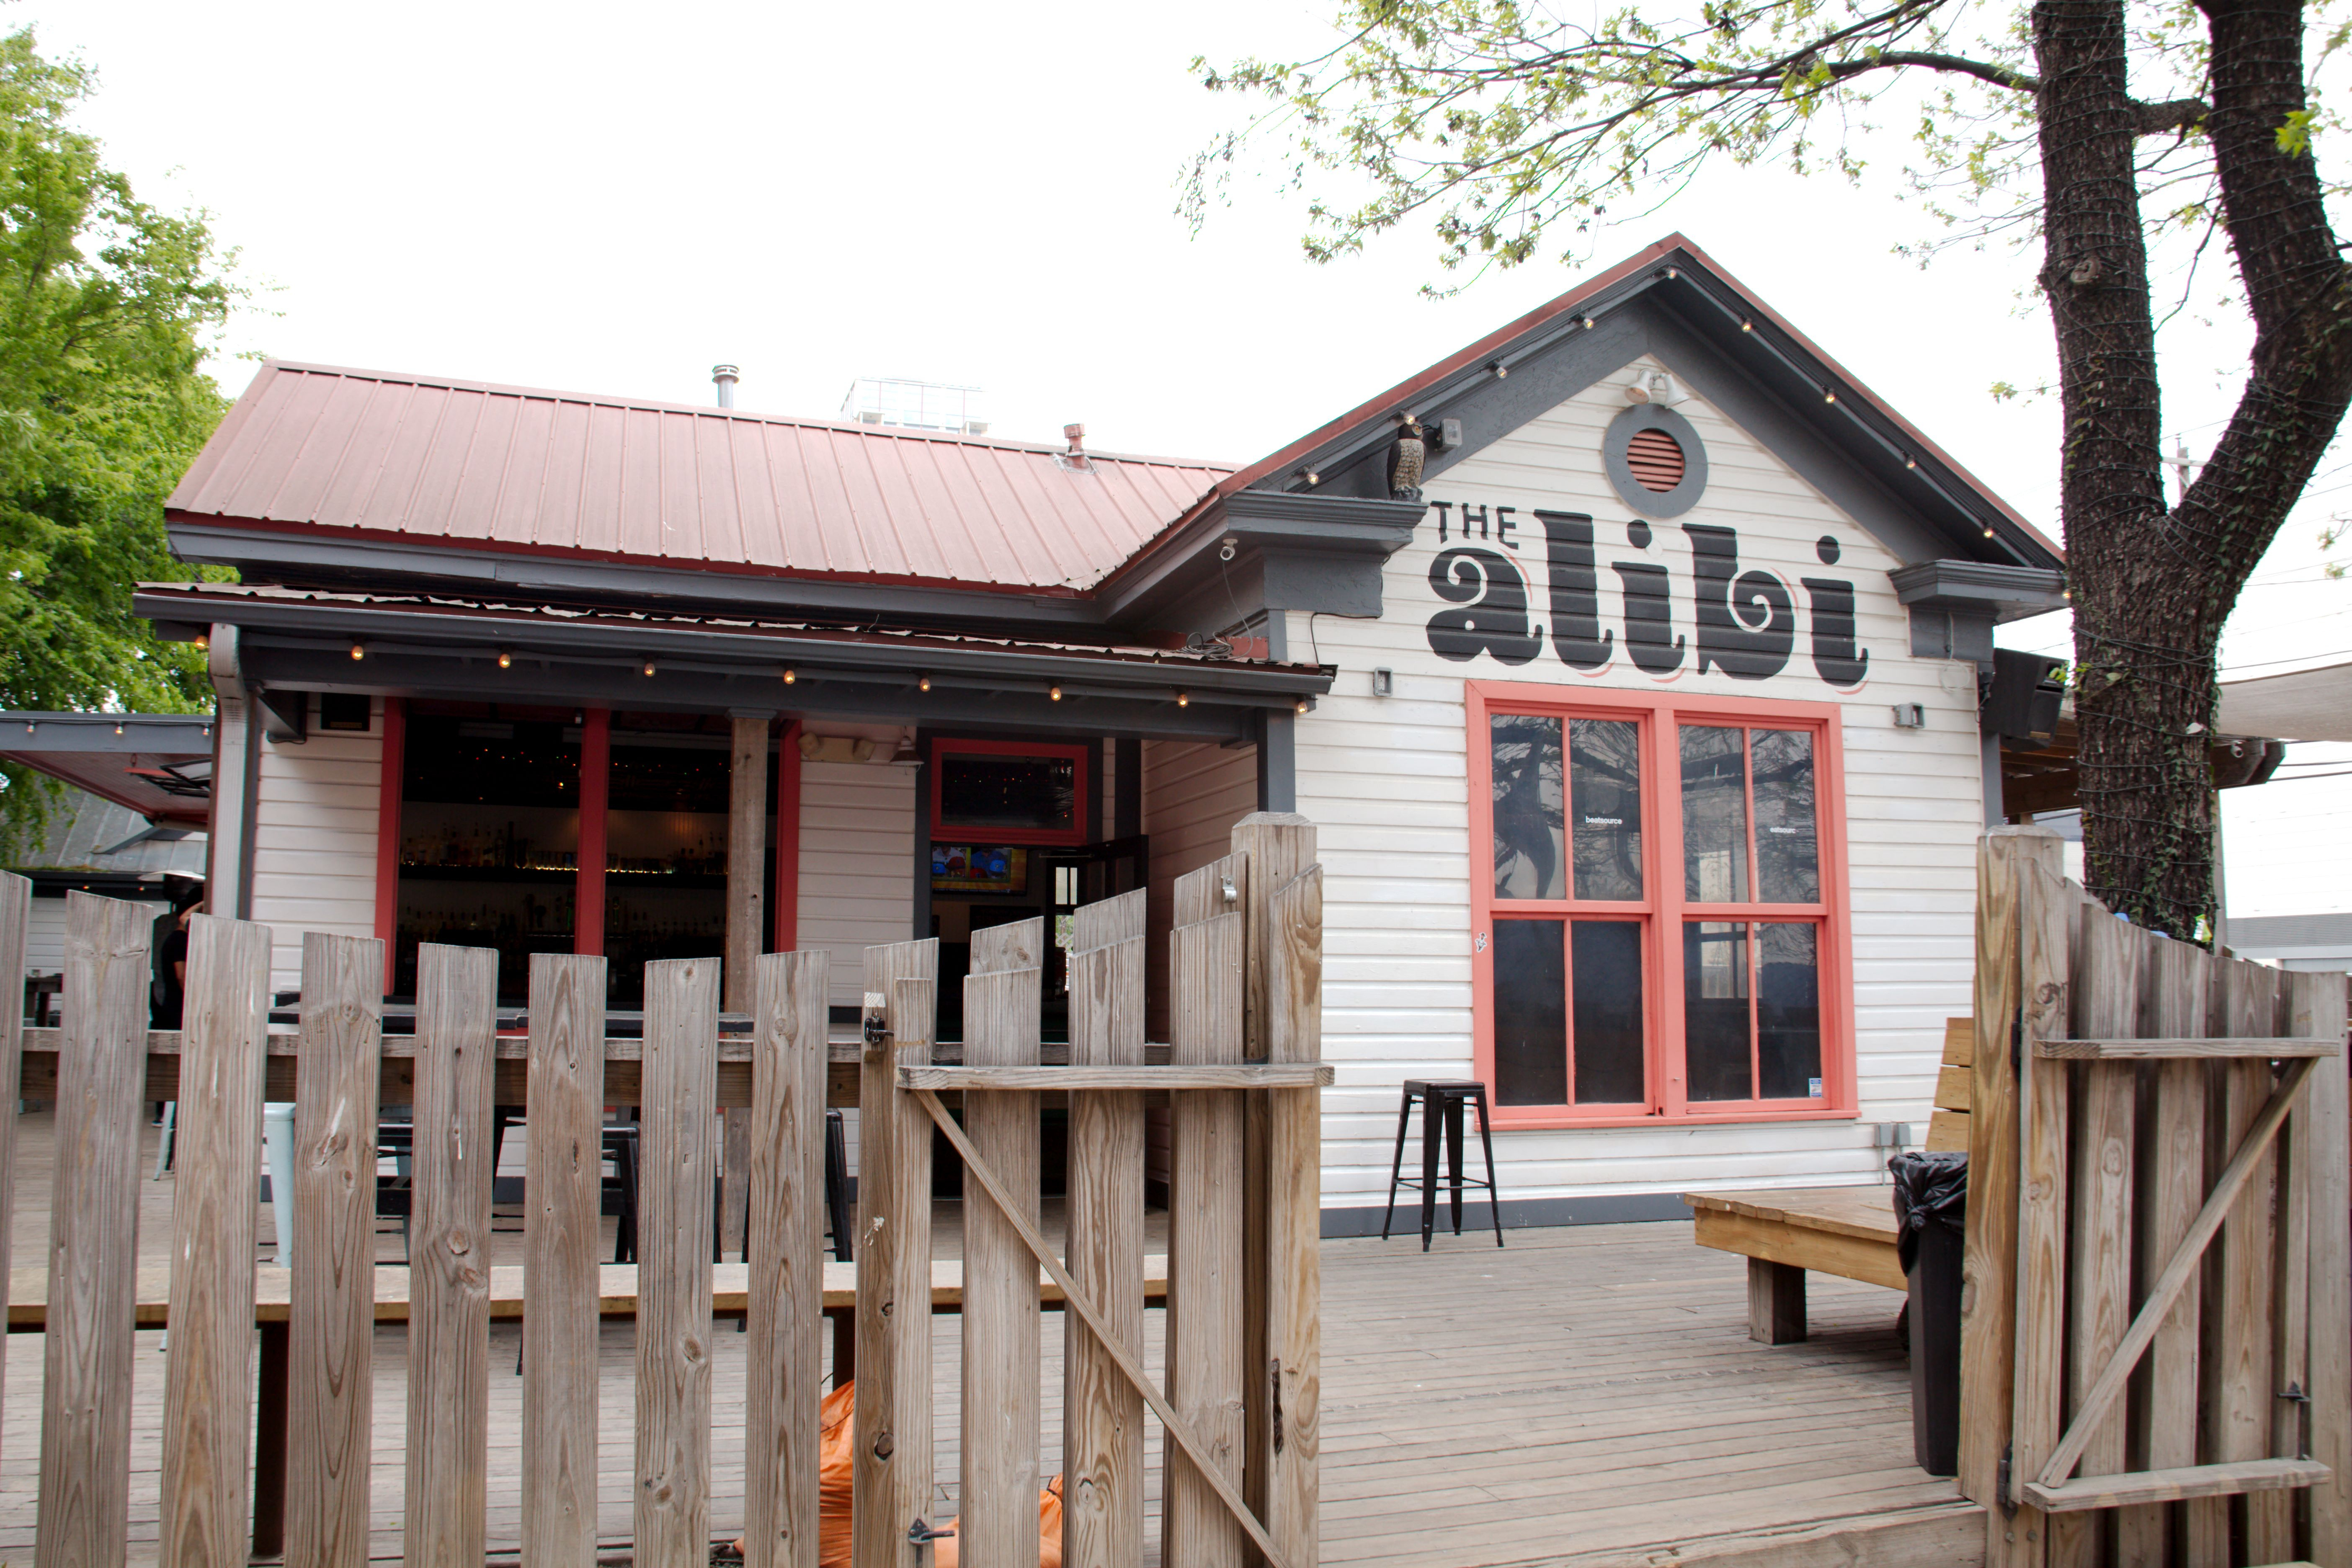 """A one-story wood-frame bungalow with an unpainted picket fence in front. A logo reading """"alibi"""" is painted on the front."""